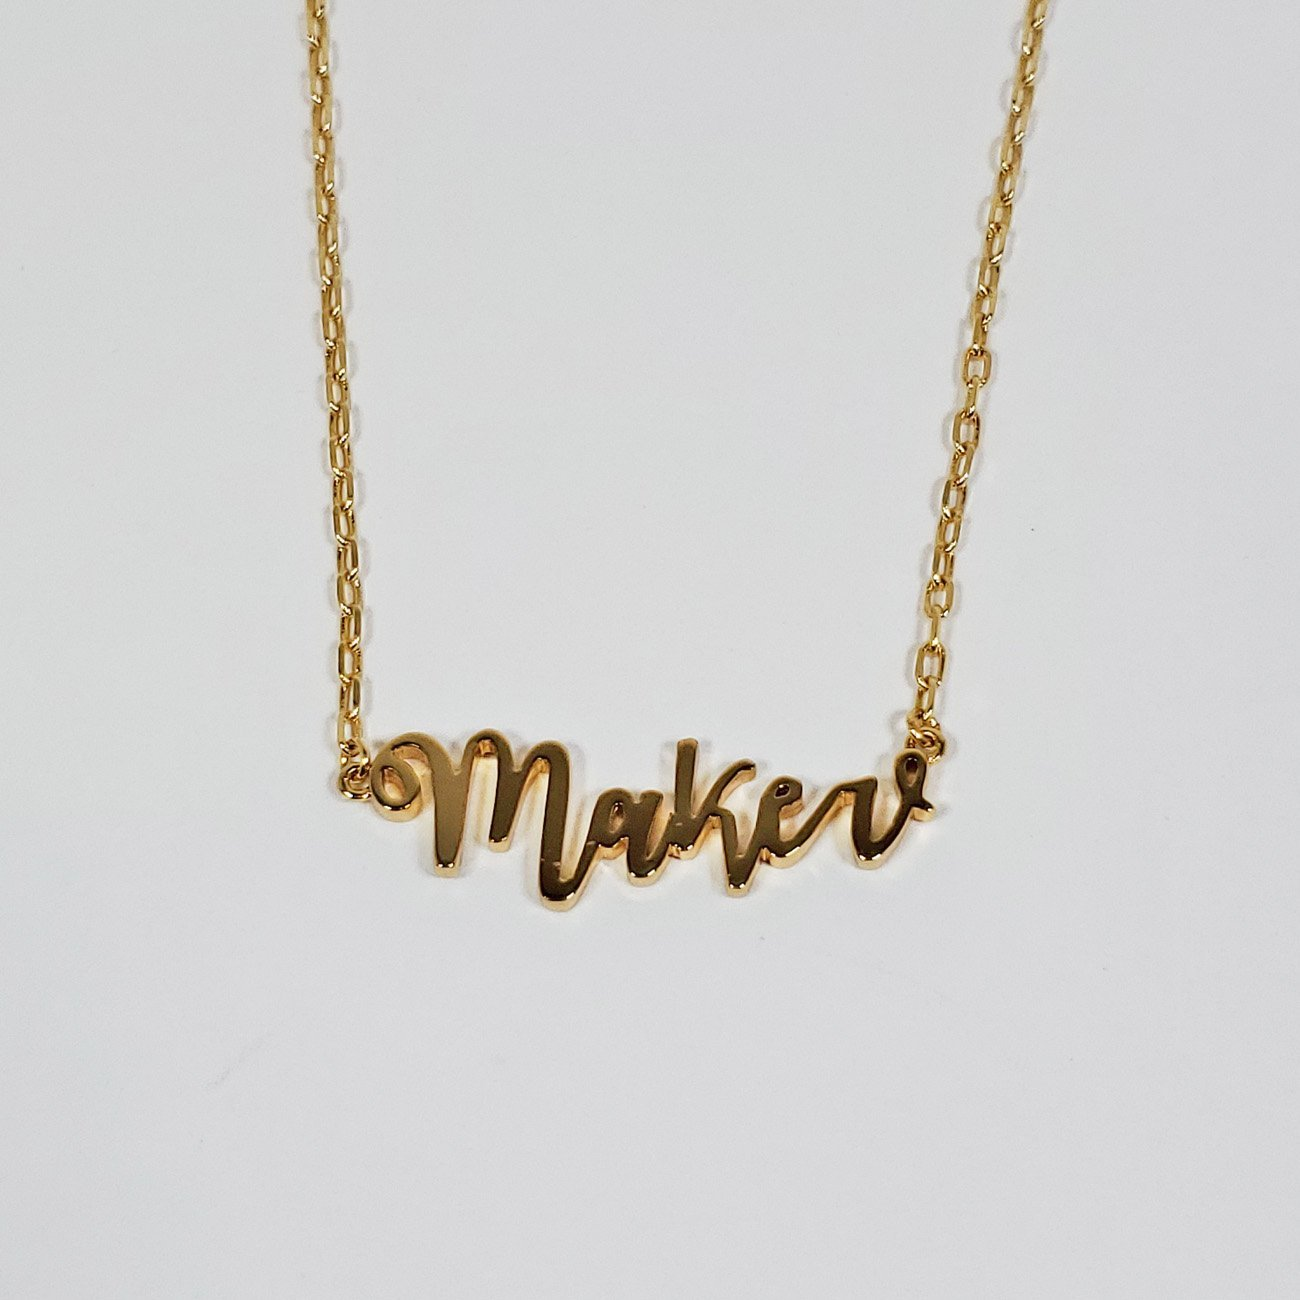 Maker Necklace Gold from the Quilt Spot